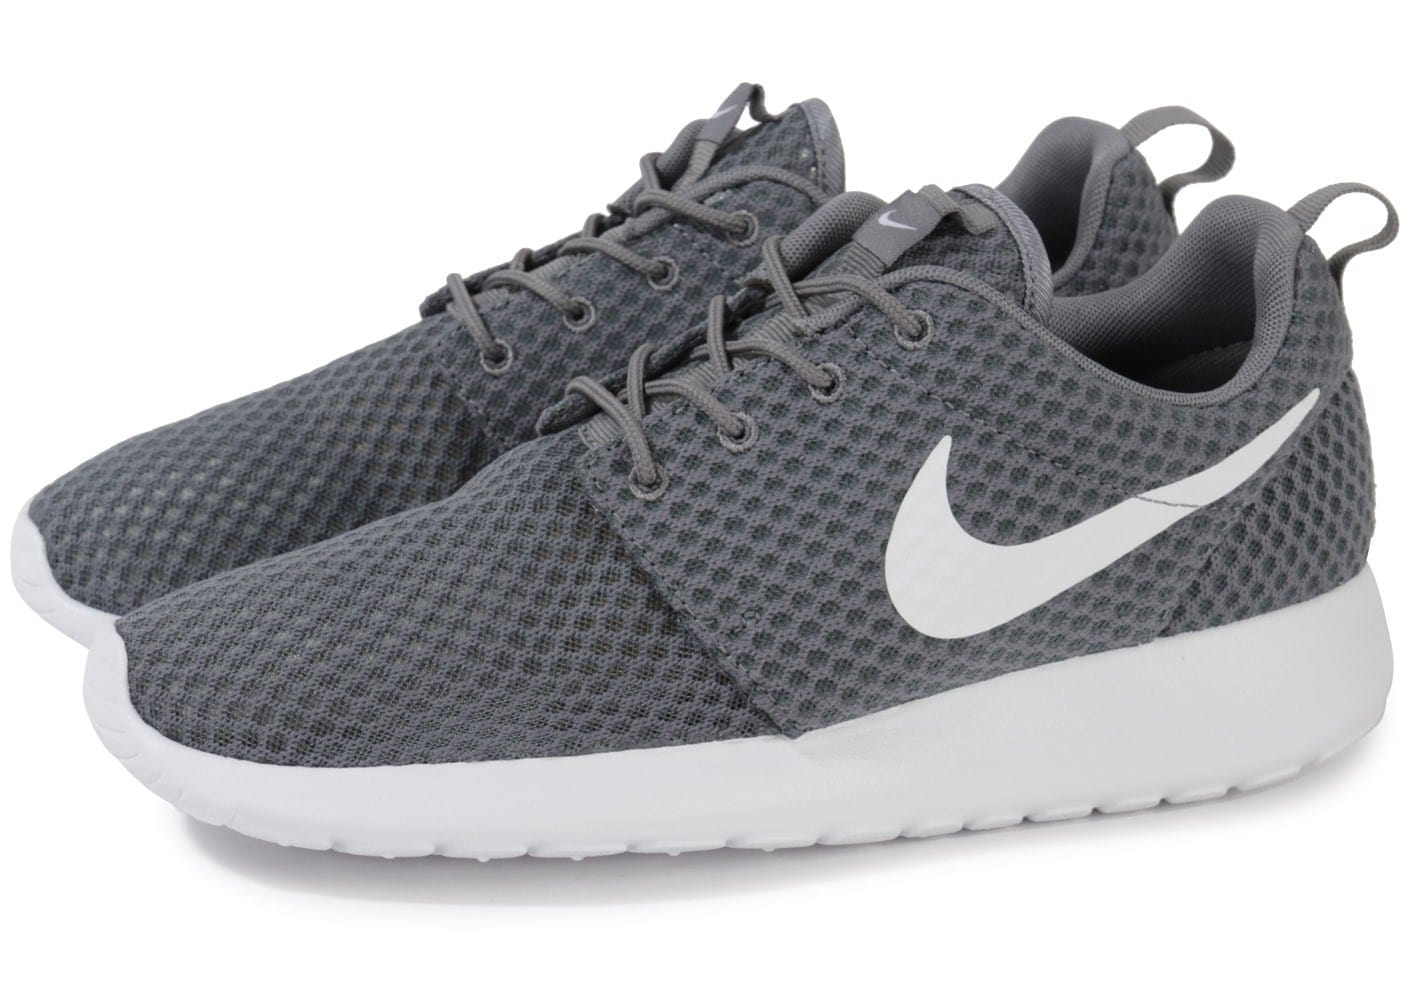 nike roshe run breeze cool grey chaussures homme chausport. Black Bedroom Furniture Sets. Home Design Ideas